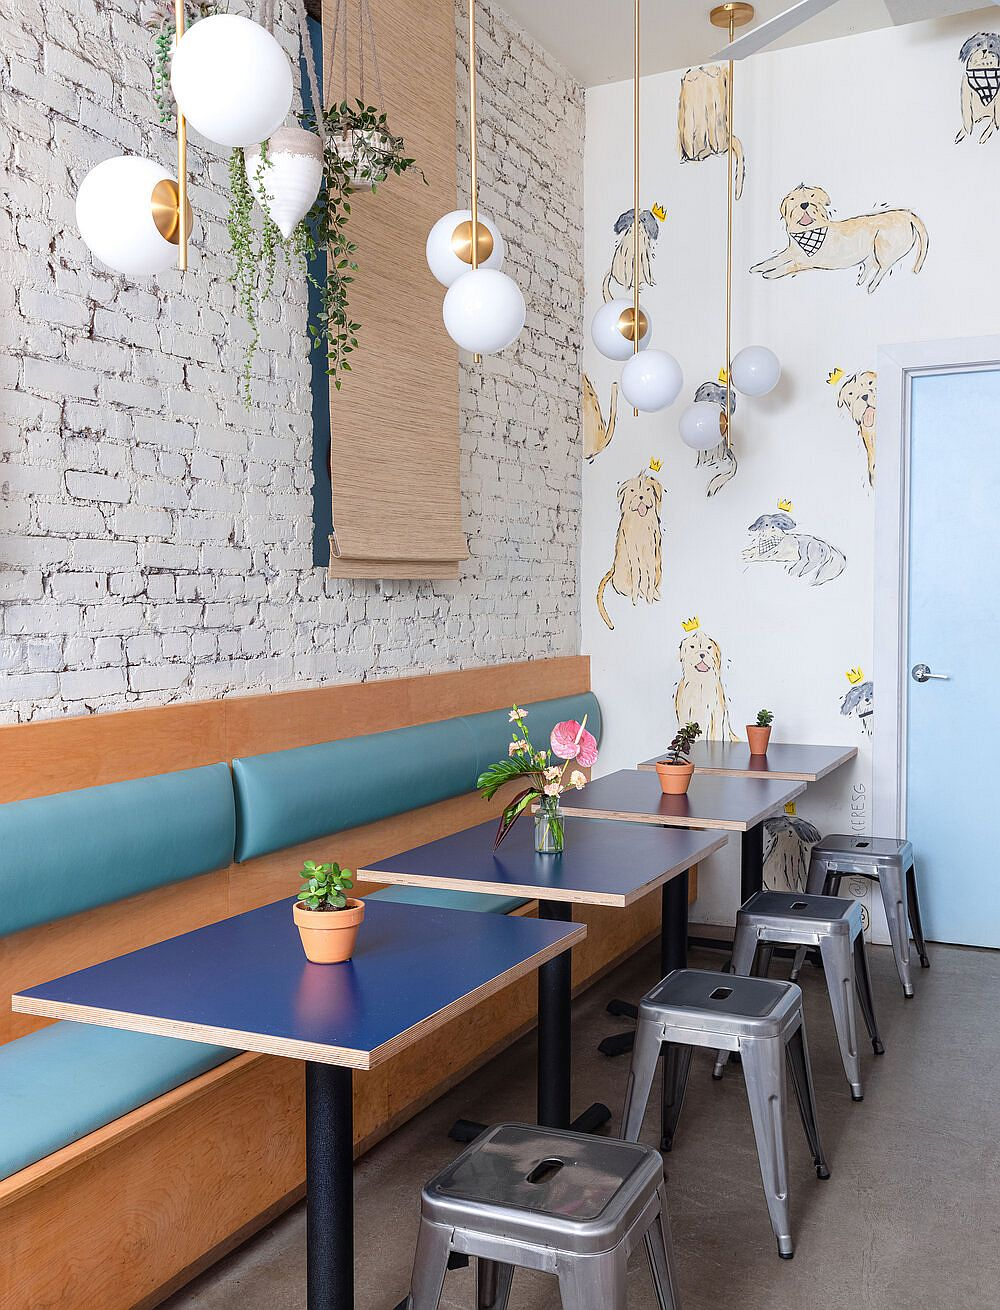 Brick walls that are whitewashed give the restaurant interior a cozy, timeless appeal